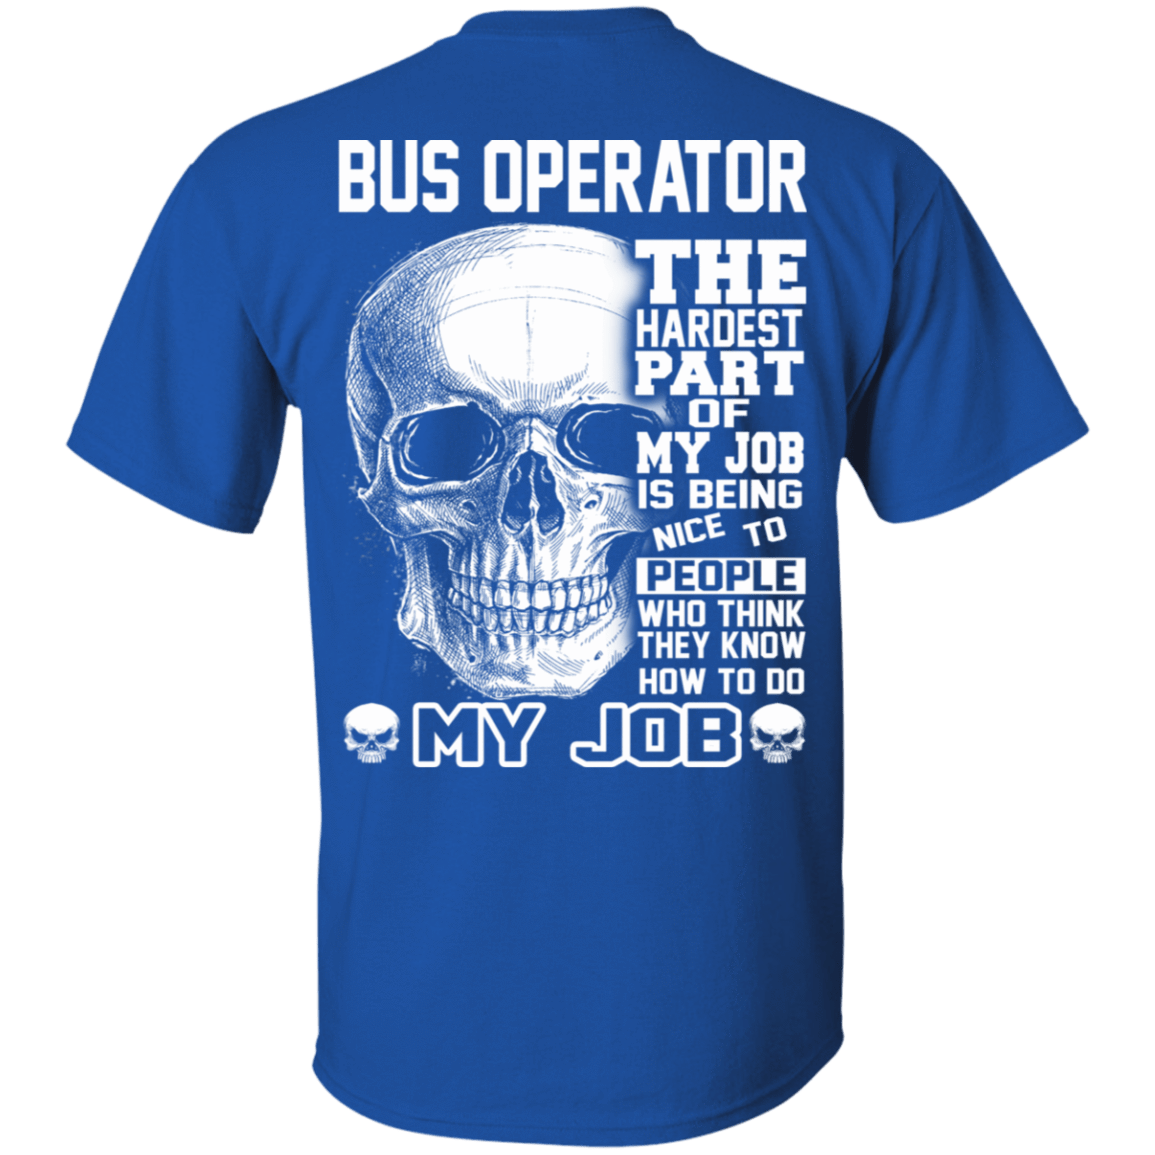 Bus Operator The Hardest Part Of My Job 22-110-72798863-249 - Tee Ript